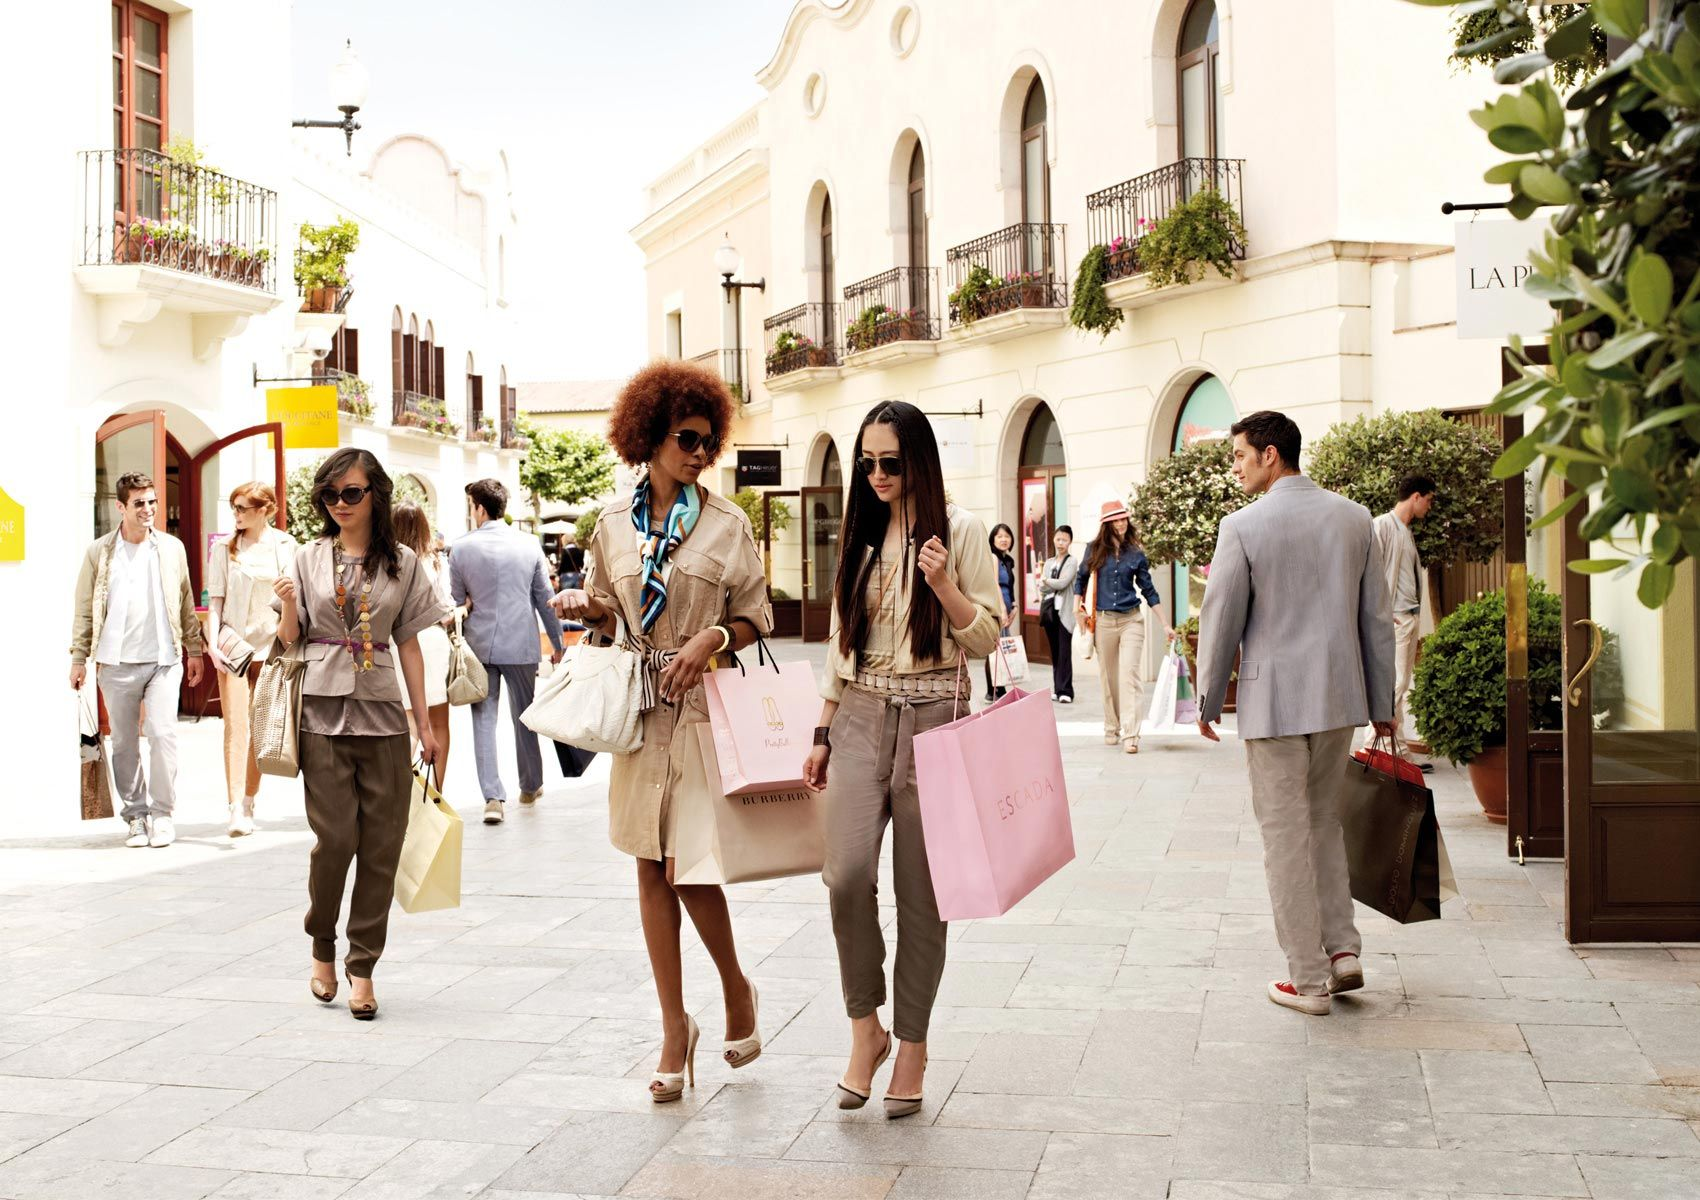 La Roca Village • La Roca Village- If you're a dedicated designer bargain-hunter, make the 30-minute pilgrimage just outside the city to La Roca Village. More than 50 discount outlets will tempt you with designer apparel from popular brands such as Antonio Miró, Versace, Diesel and Camper.